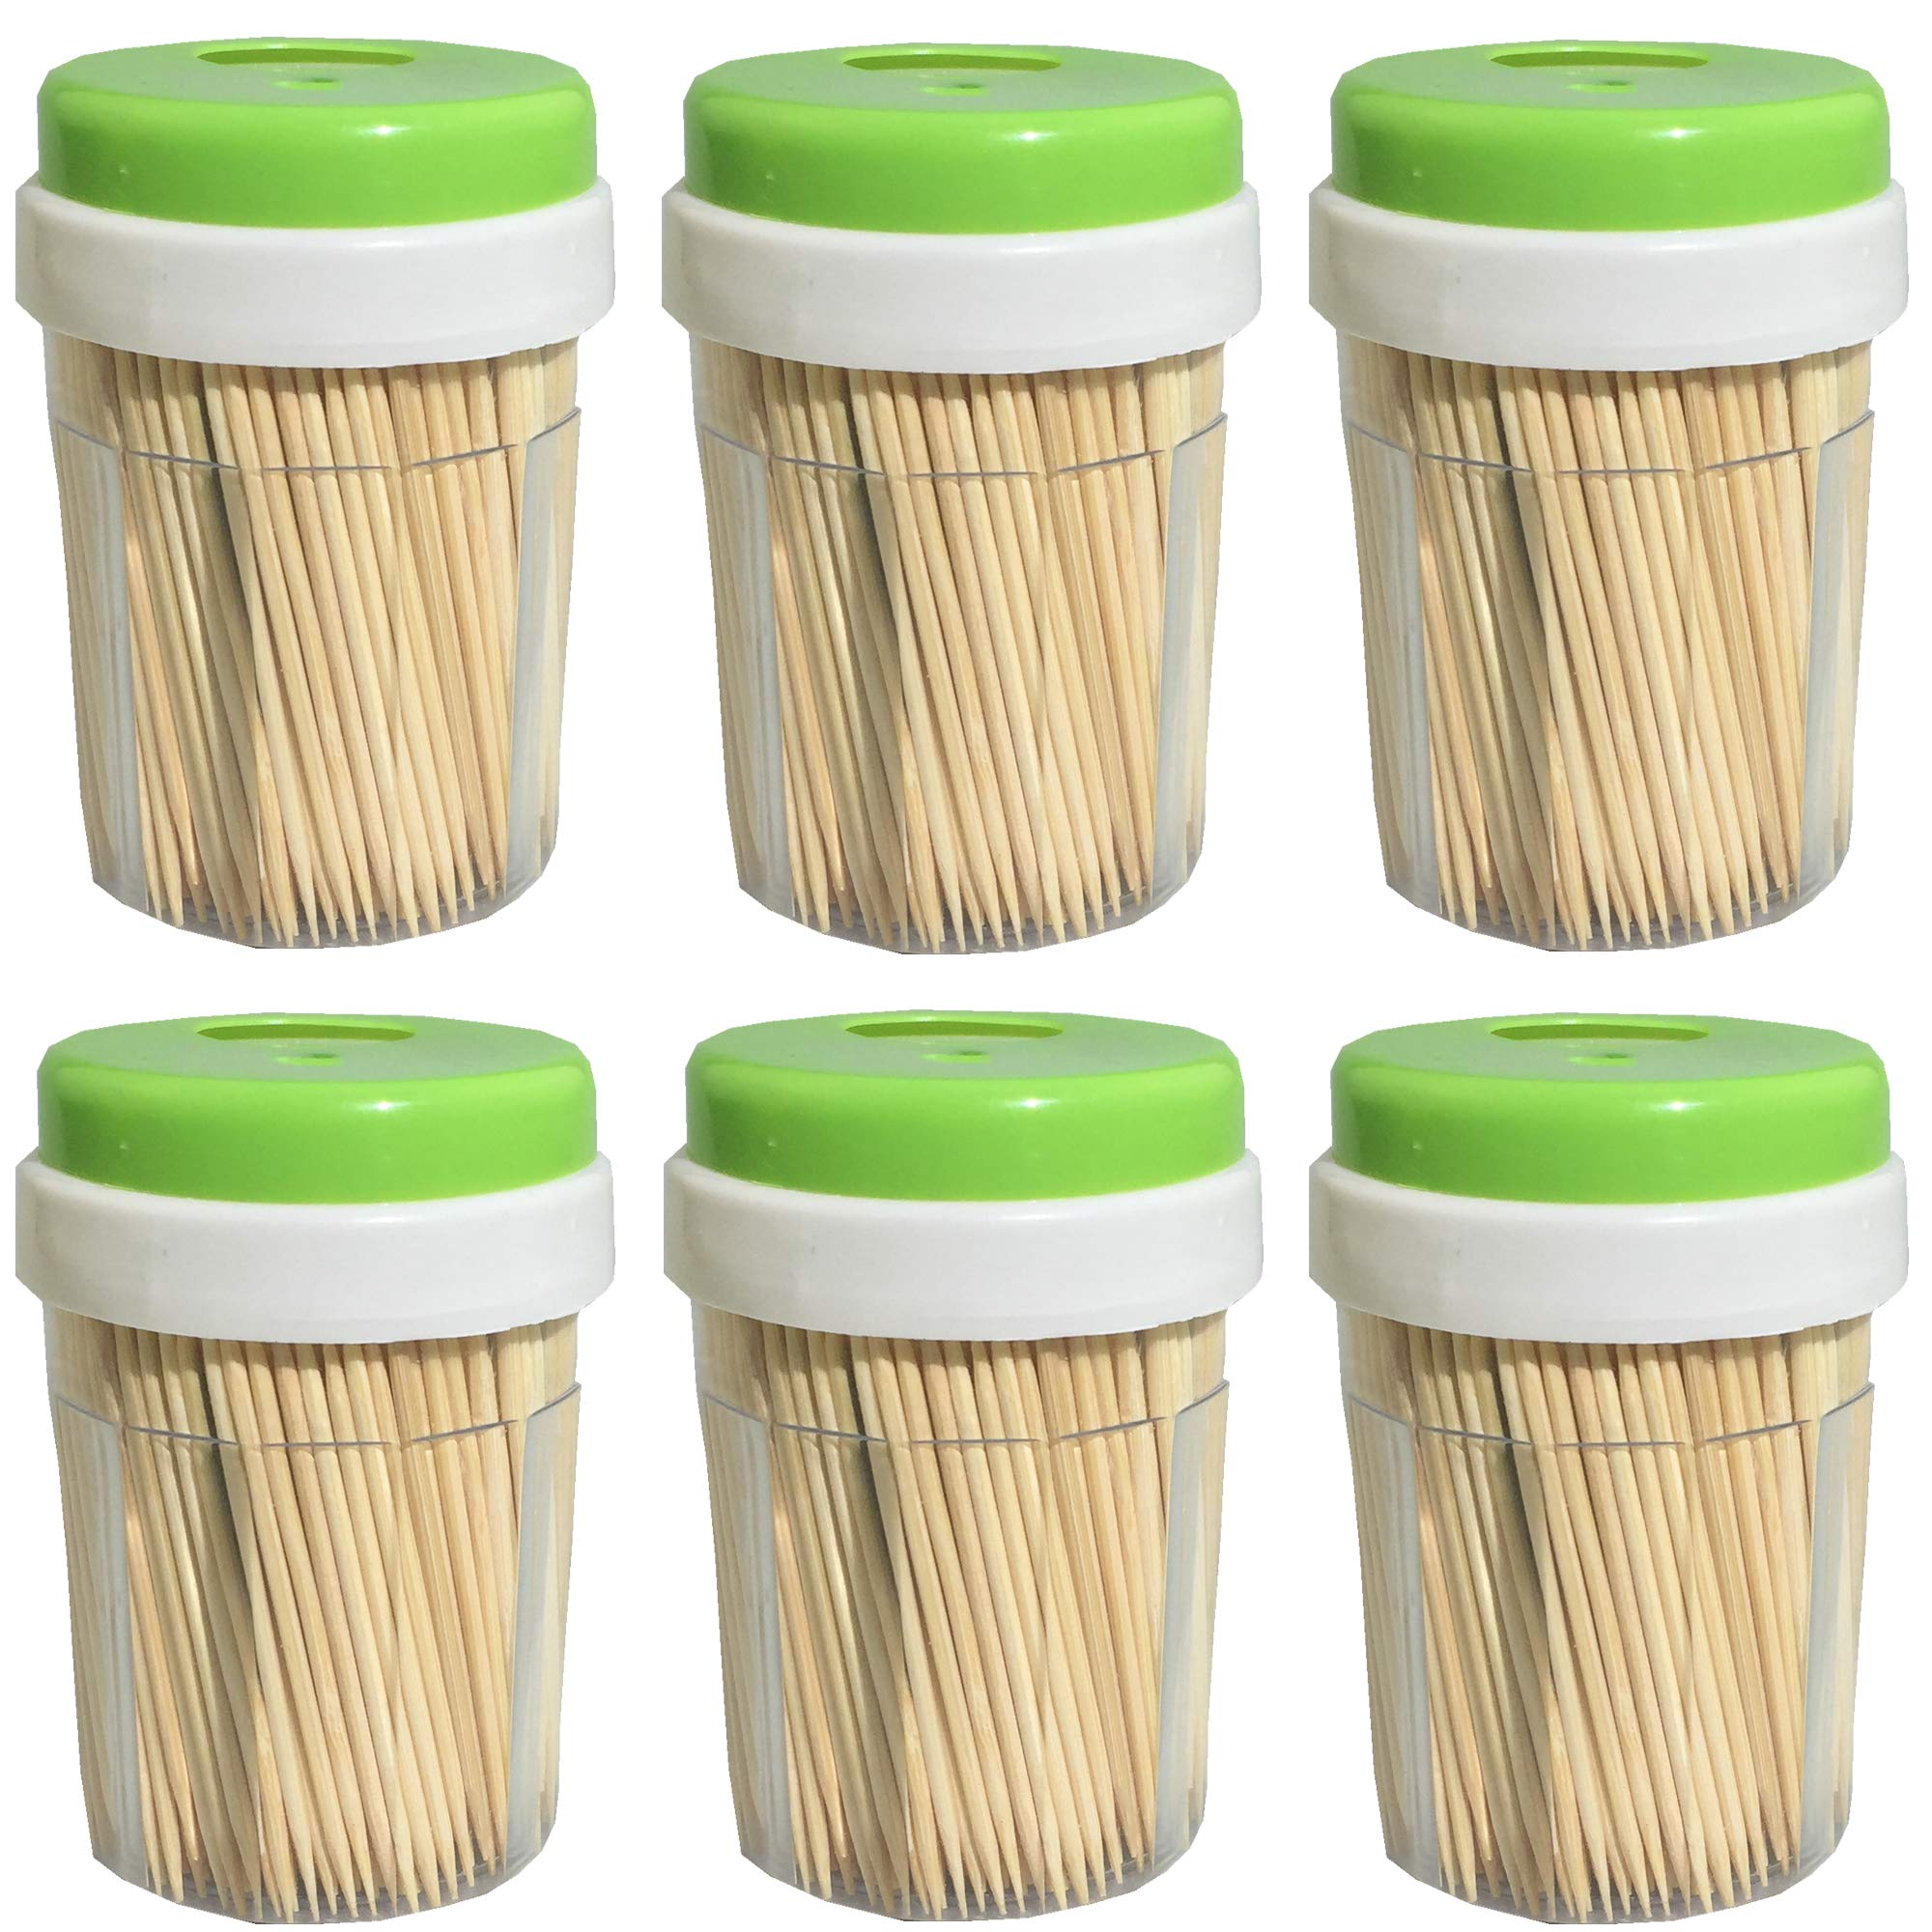 Round Bamboo Wood Toothpicks 3000 Pieces - Splinter-Free Wooden Toothpicks for Teeth with Dispenser by My Trendy Kitchen